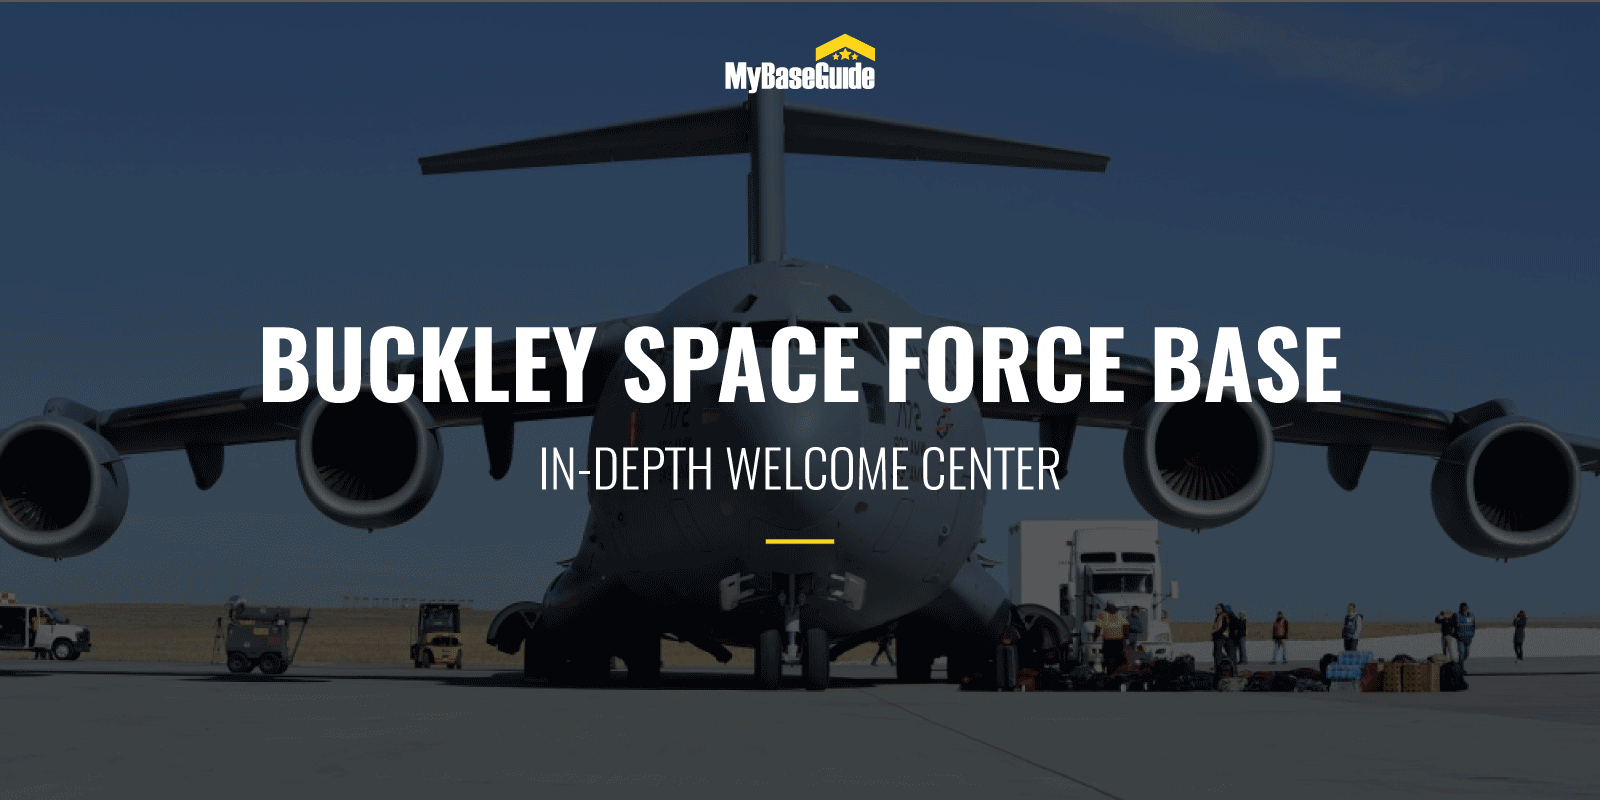 Buckley AFB Welcome Center (Now Buckley Space Force Base)